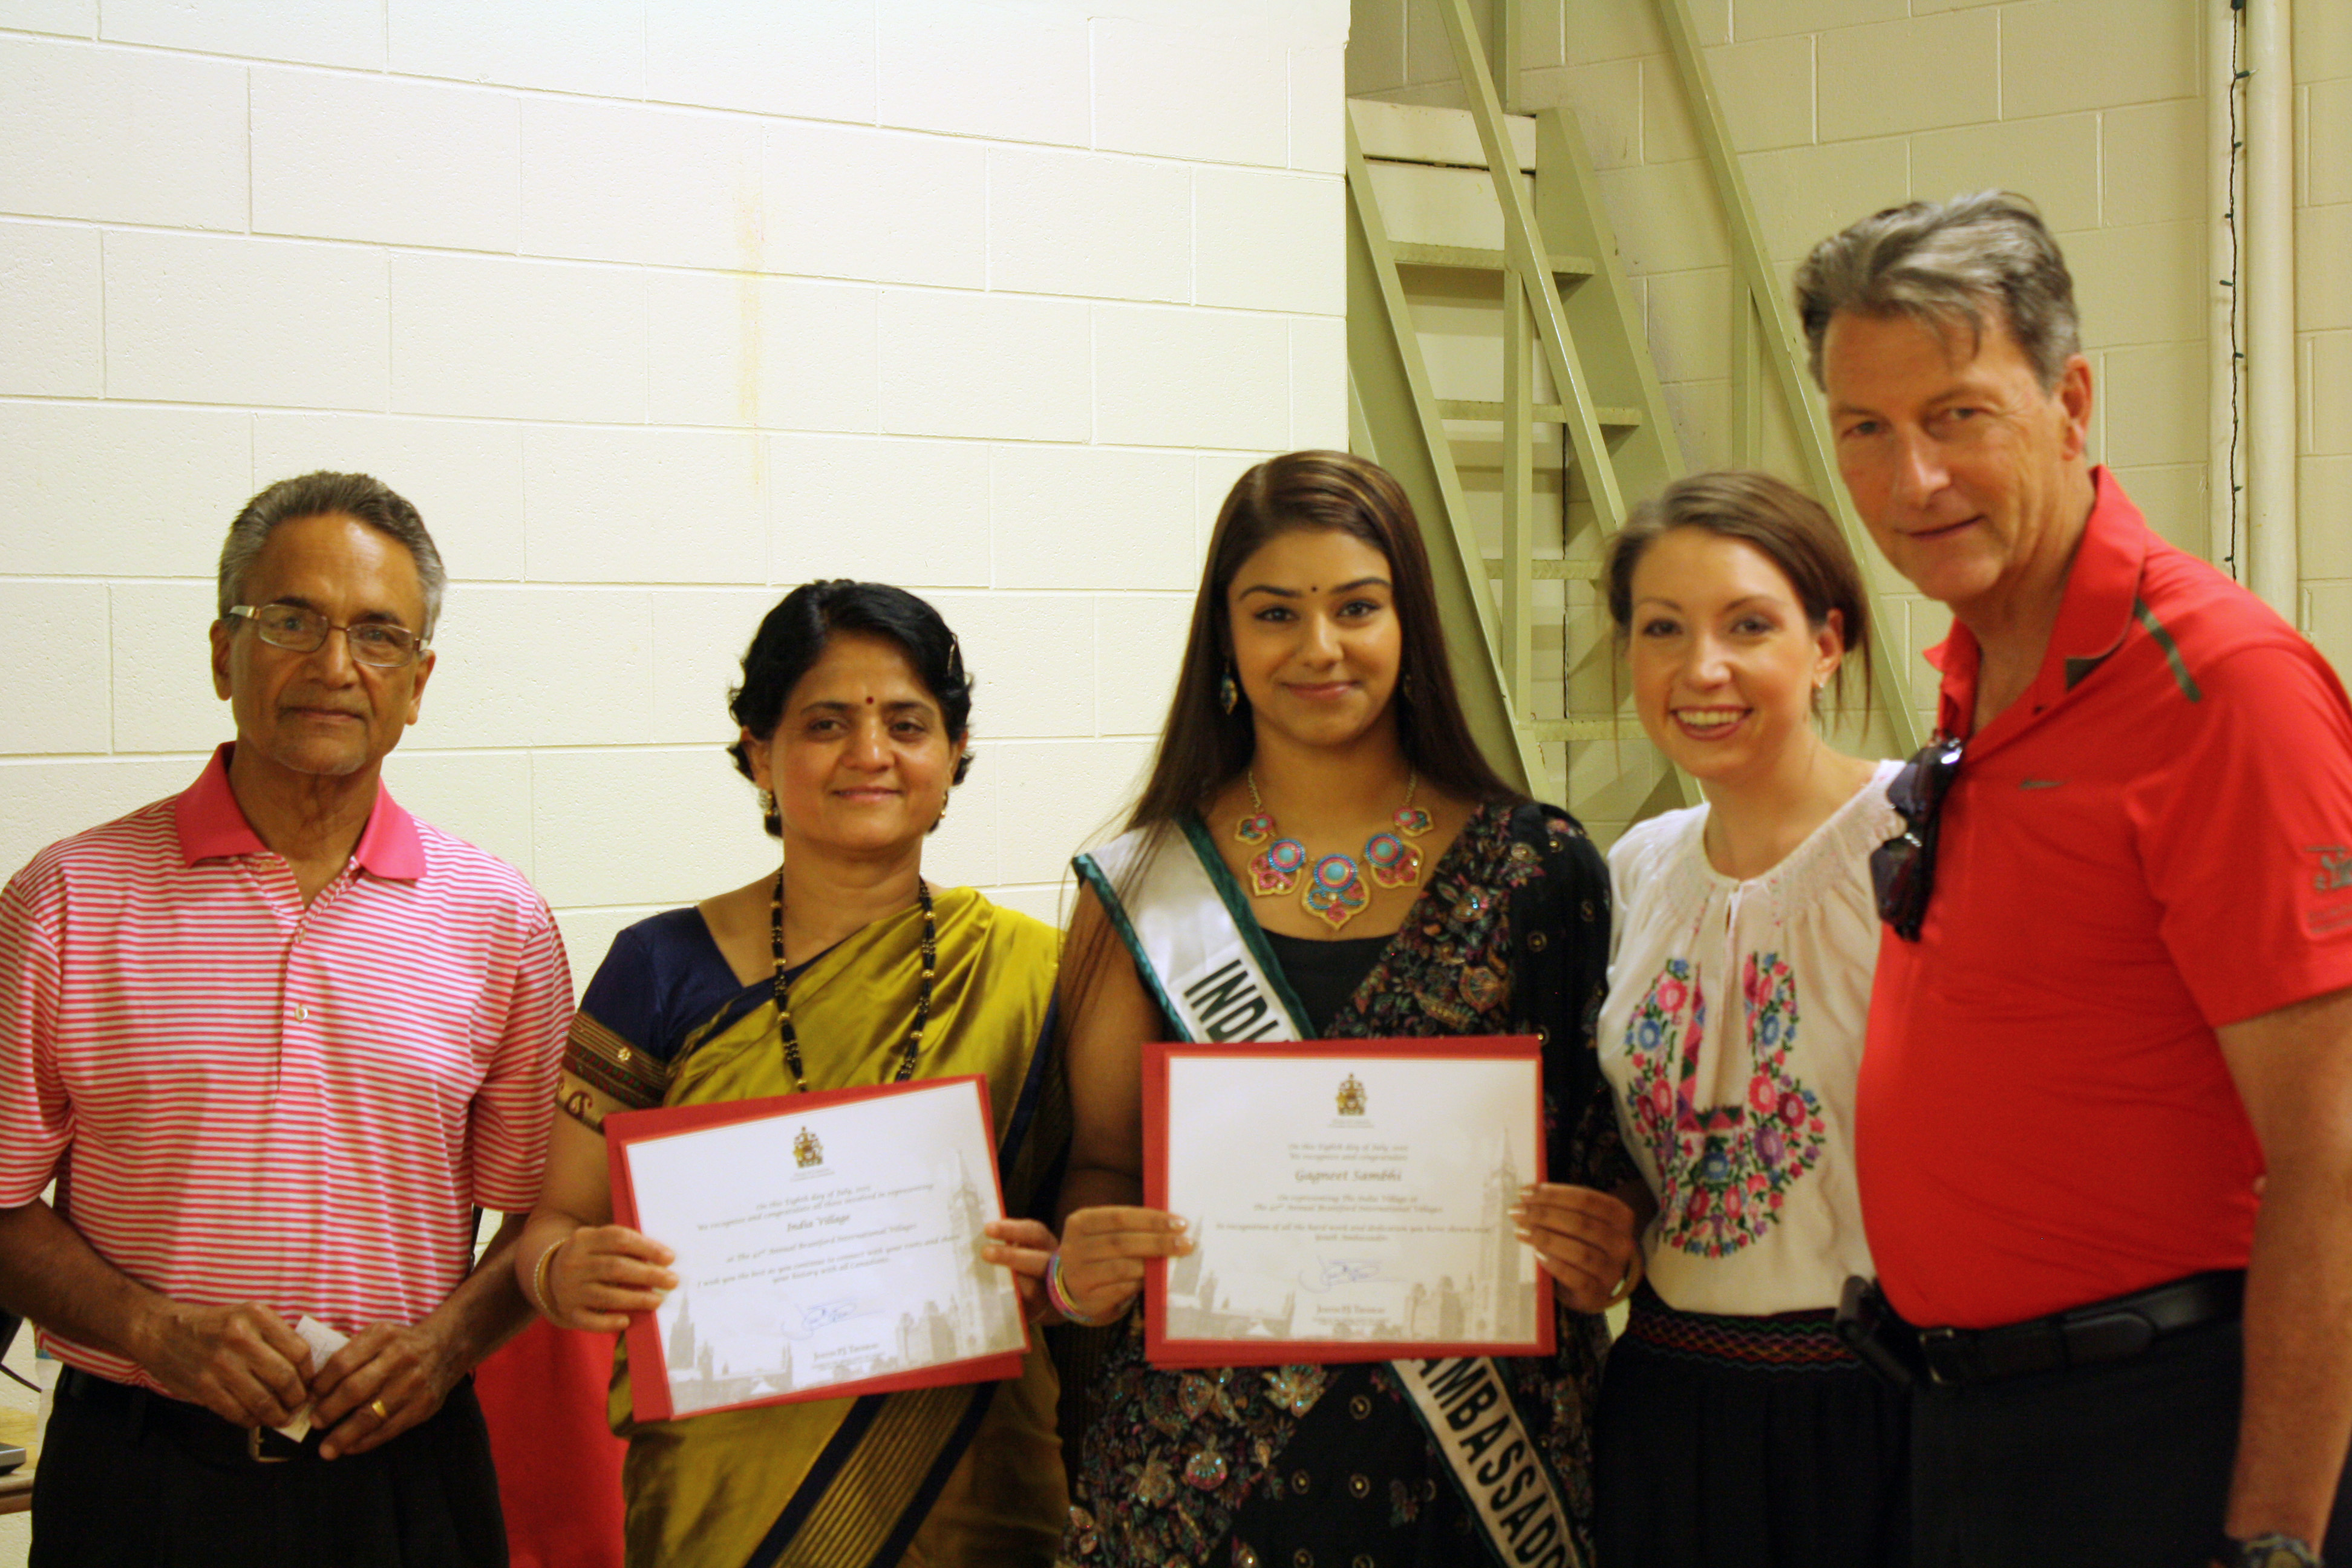 Takacs, McKay, Village Ambassador and Other India Village Volunteers July 11, 2015